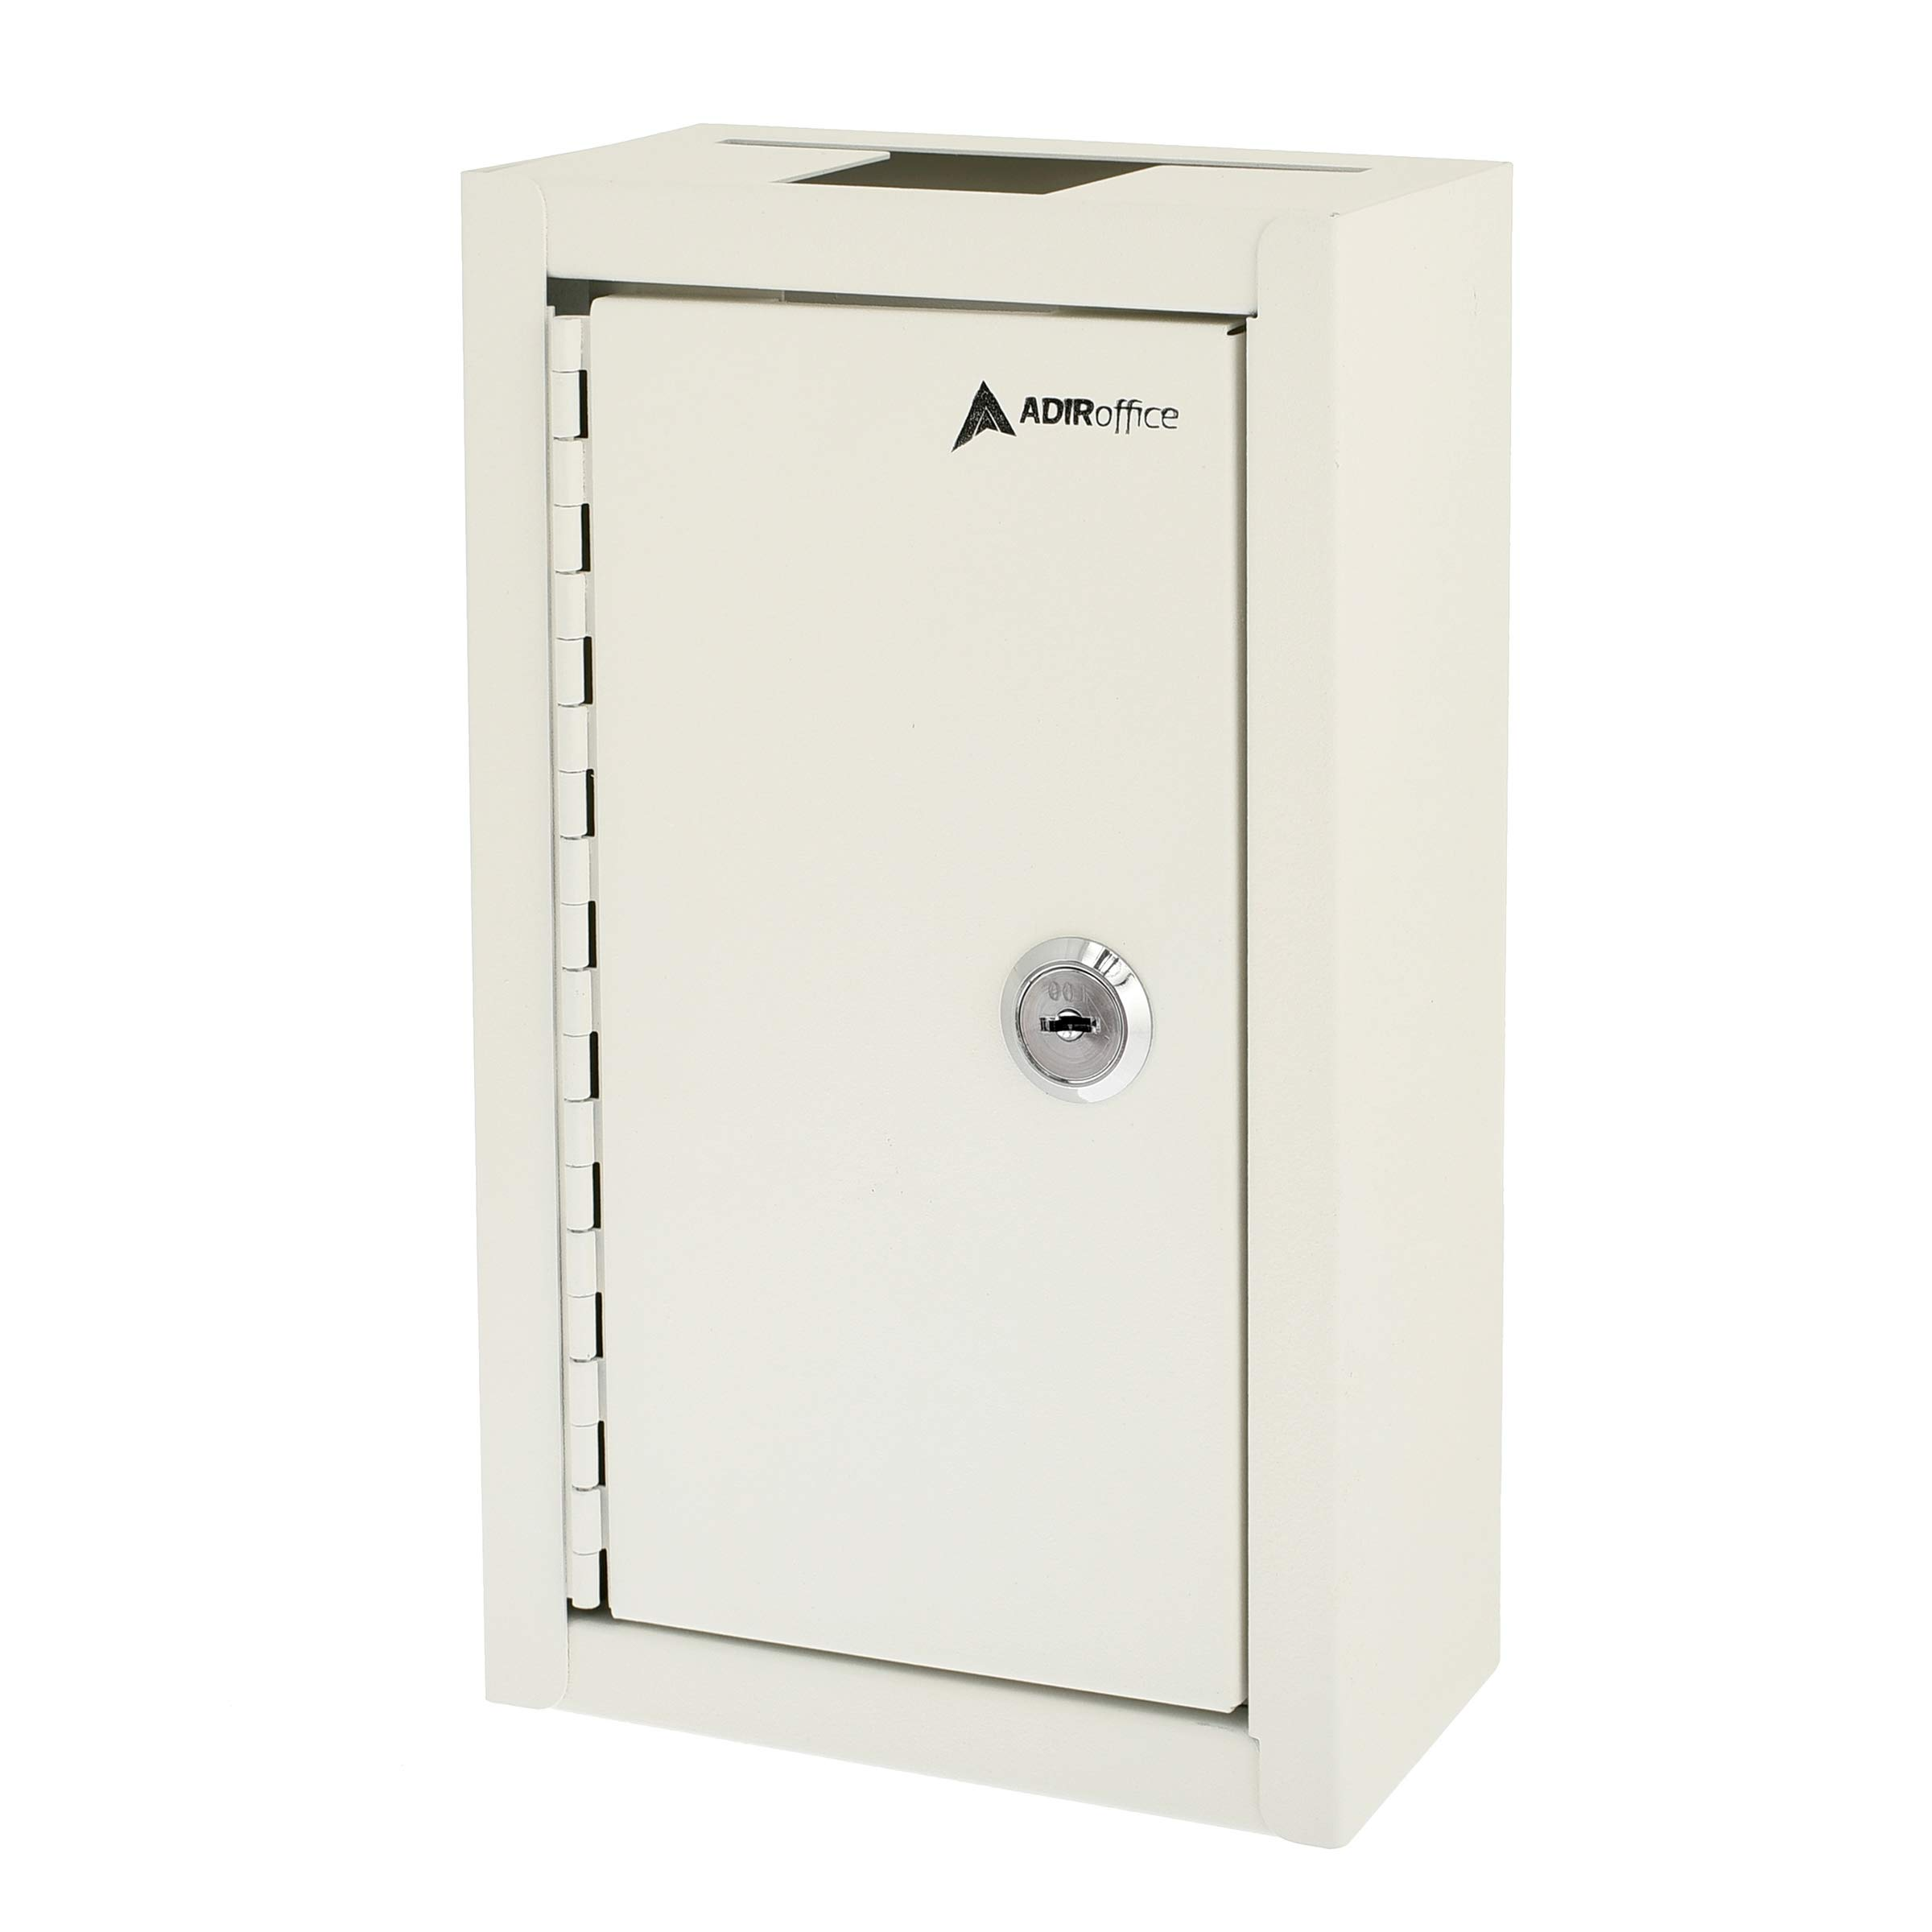 AdirOffice Large Key Drop Box - Large Capacity Commercial Grade Storage Box - Safe & Secure Parcel & Packages - for Home & Business Use (White)